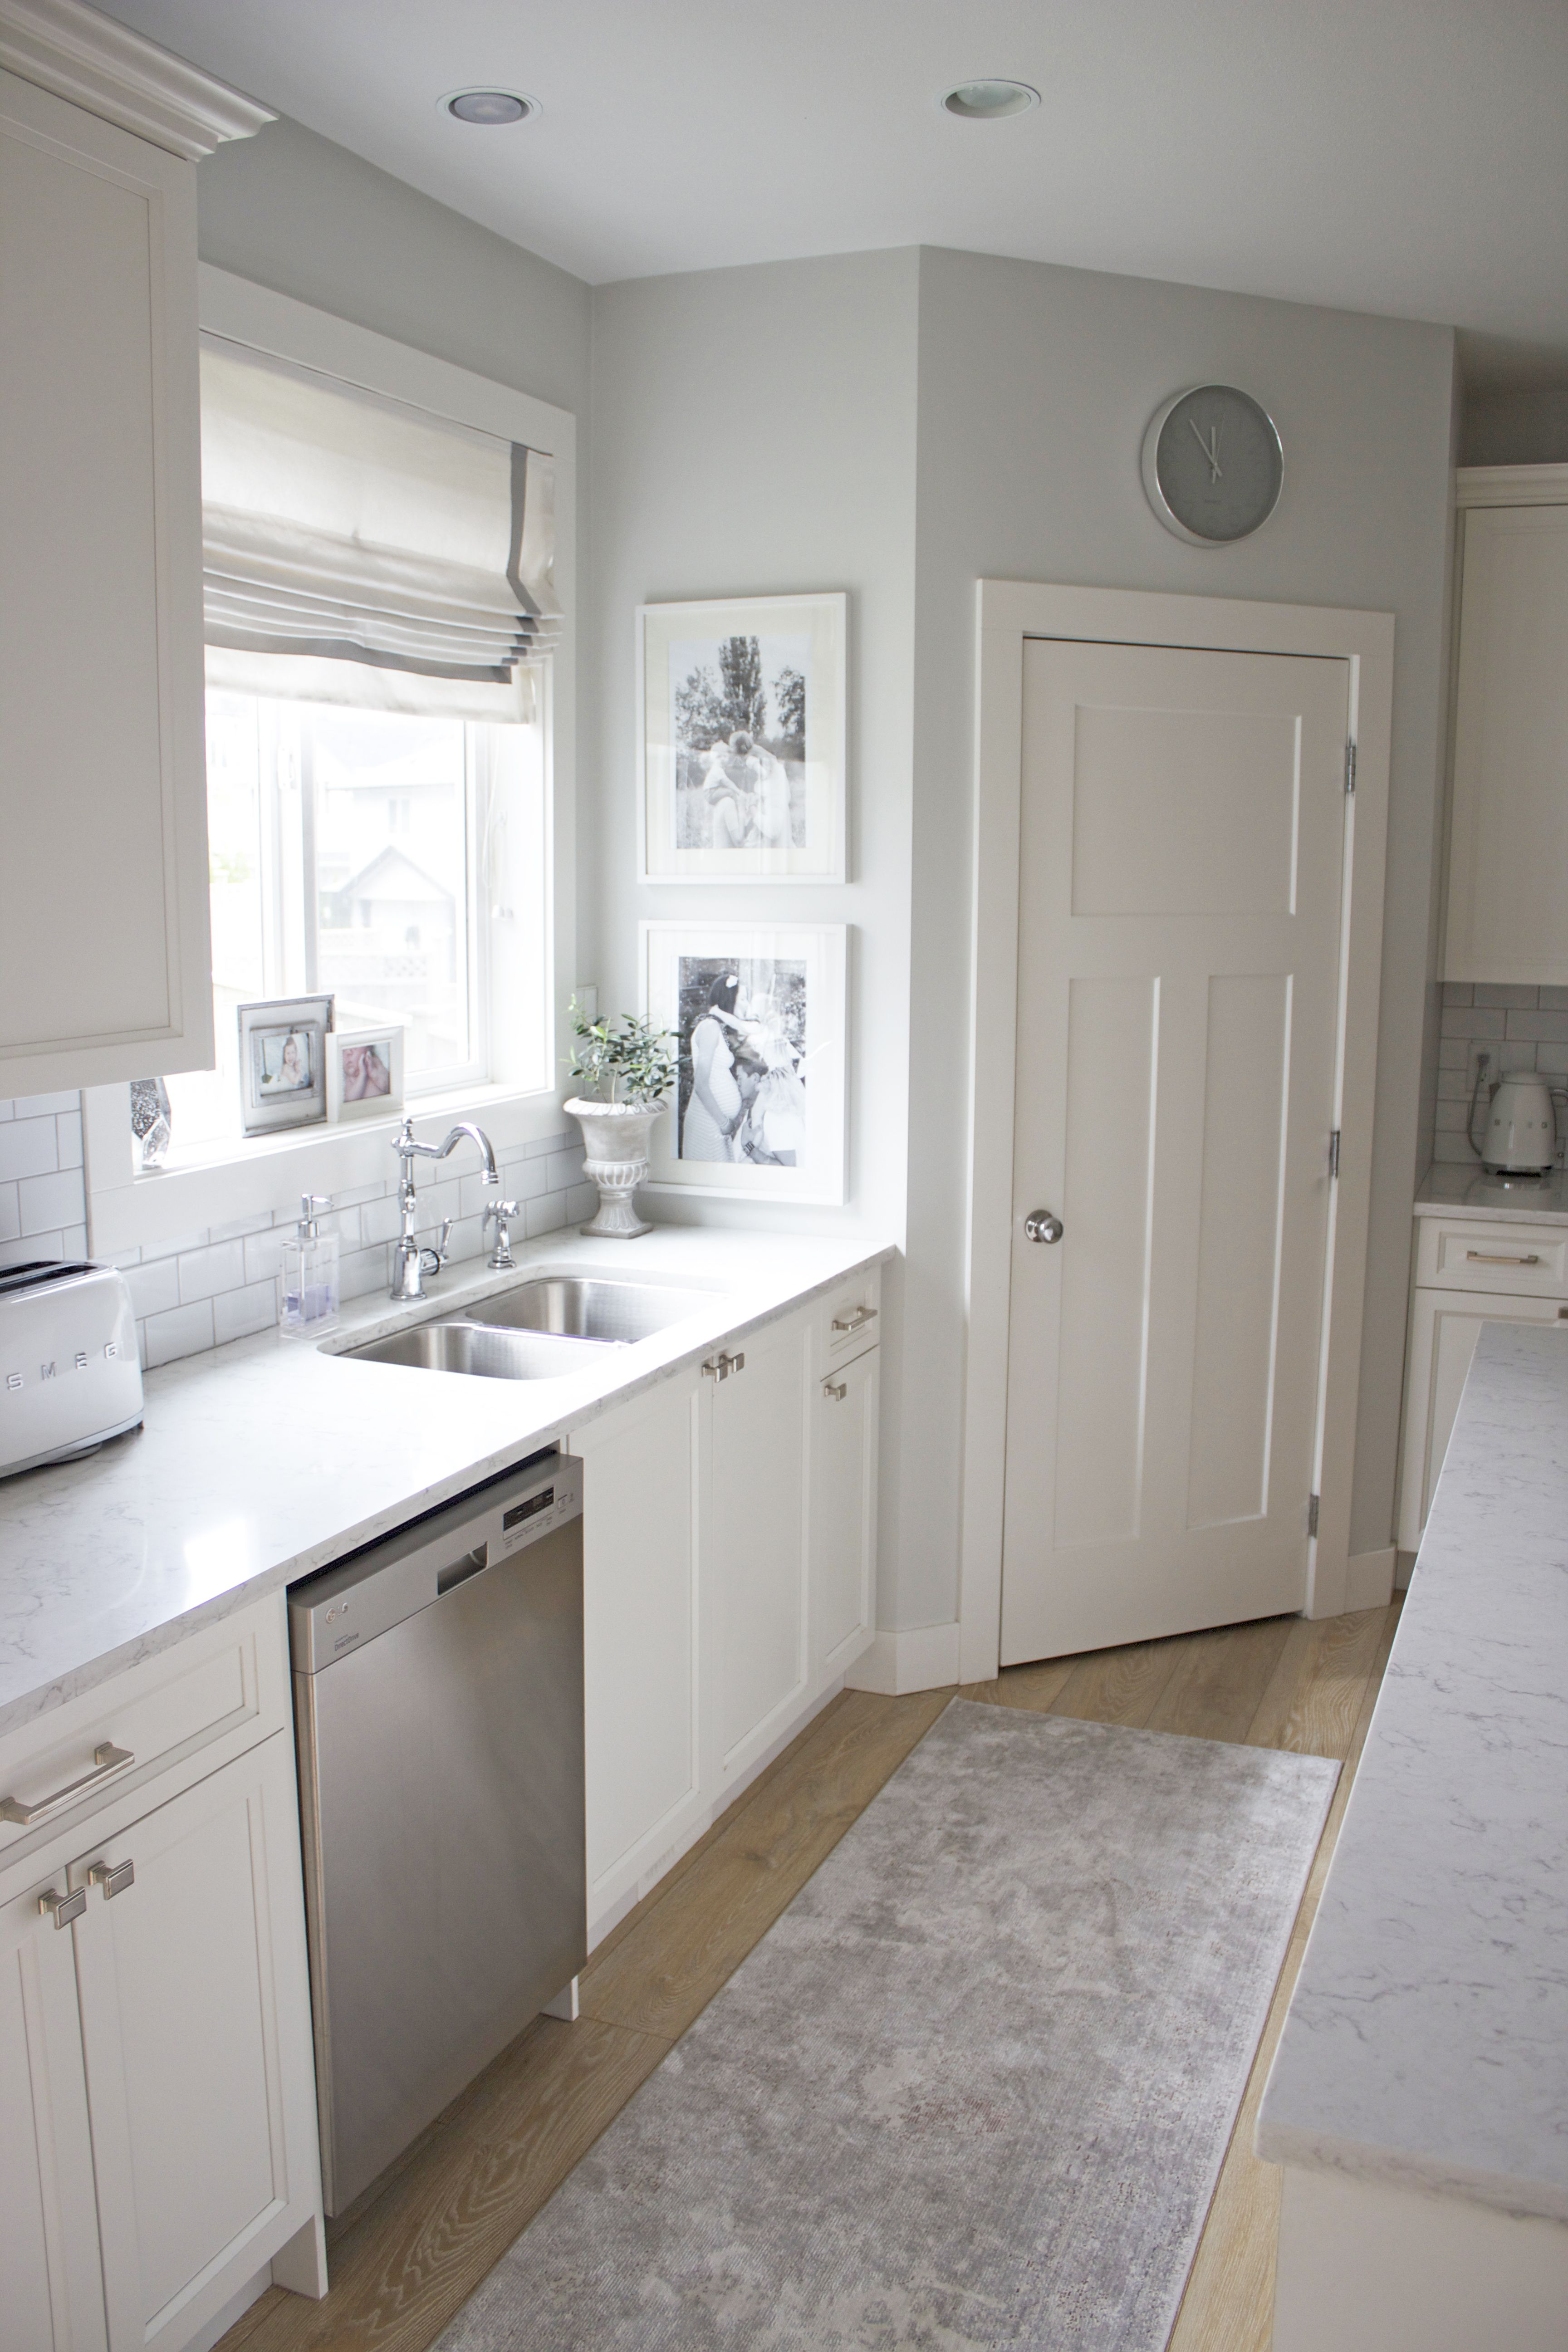 Bright White Kitchen Reveal Grey Walls Kitchen Cabinets Grey And White Grey Kitchen Walls White Cabinets Grey Kitchen Walls